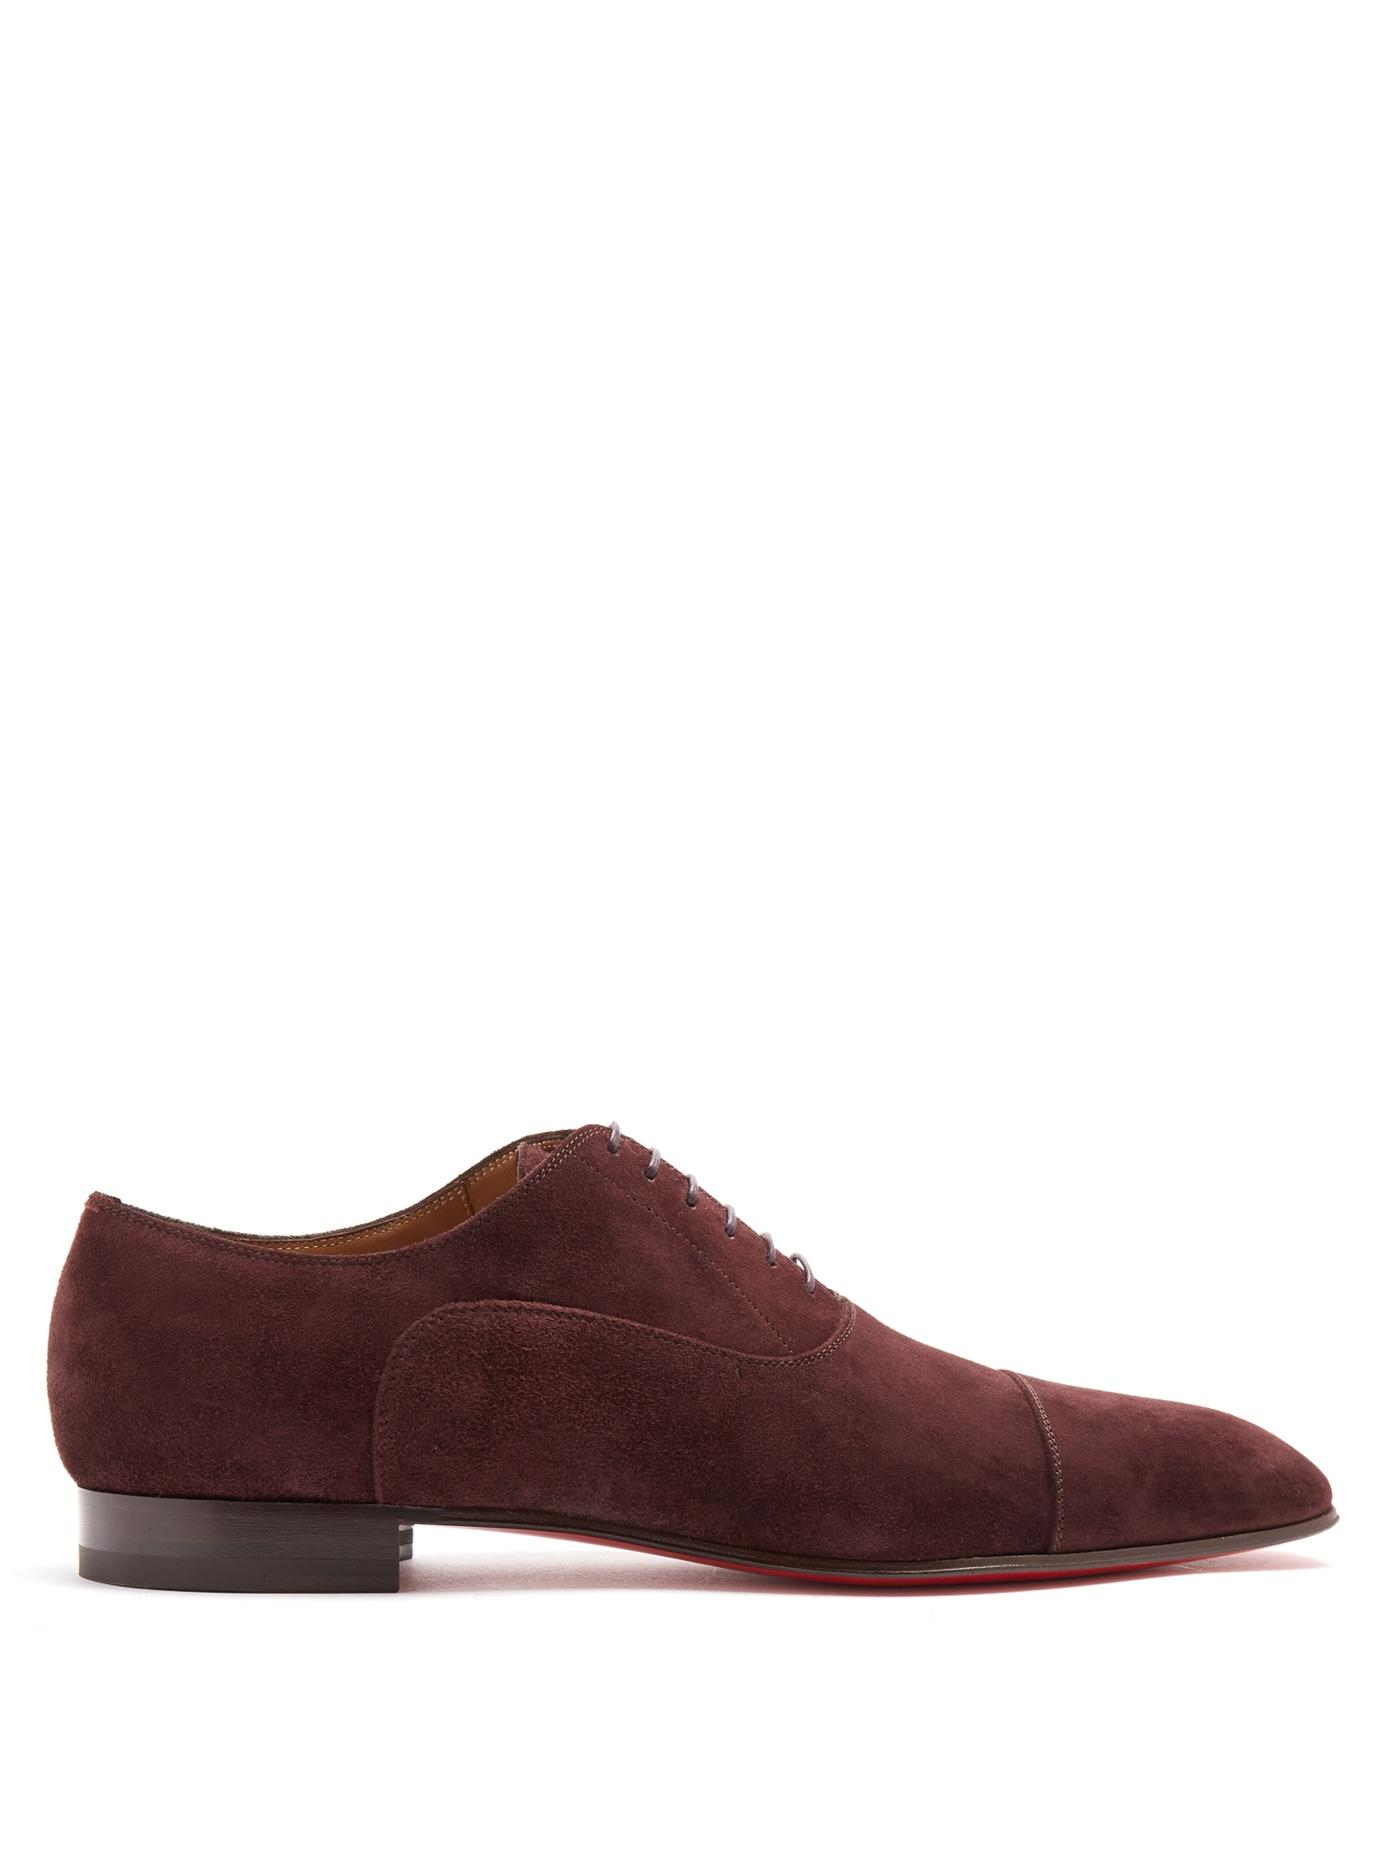 Christian Louboutin Greggo Suede Derby Shoes In Burgundy-Brown